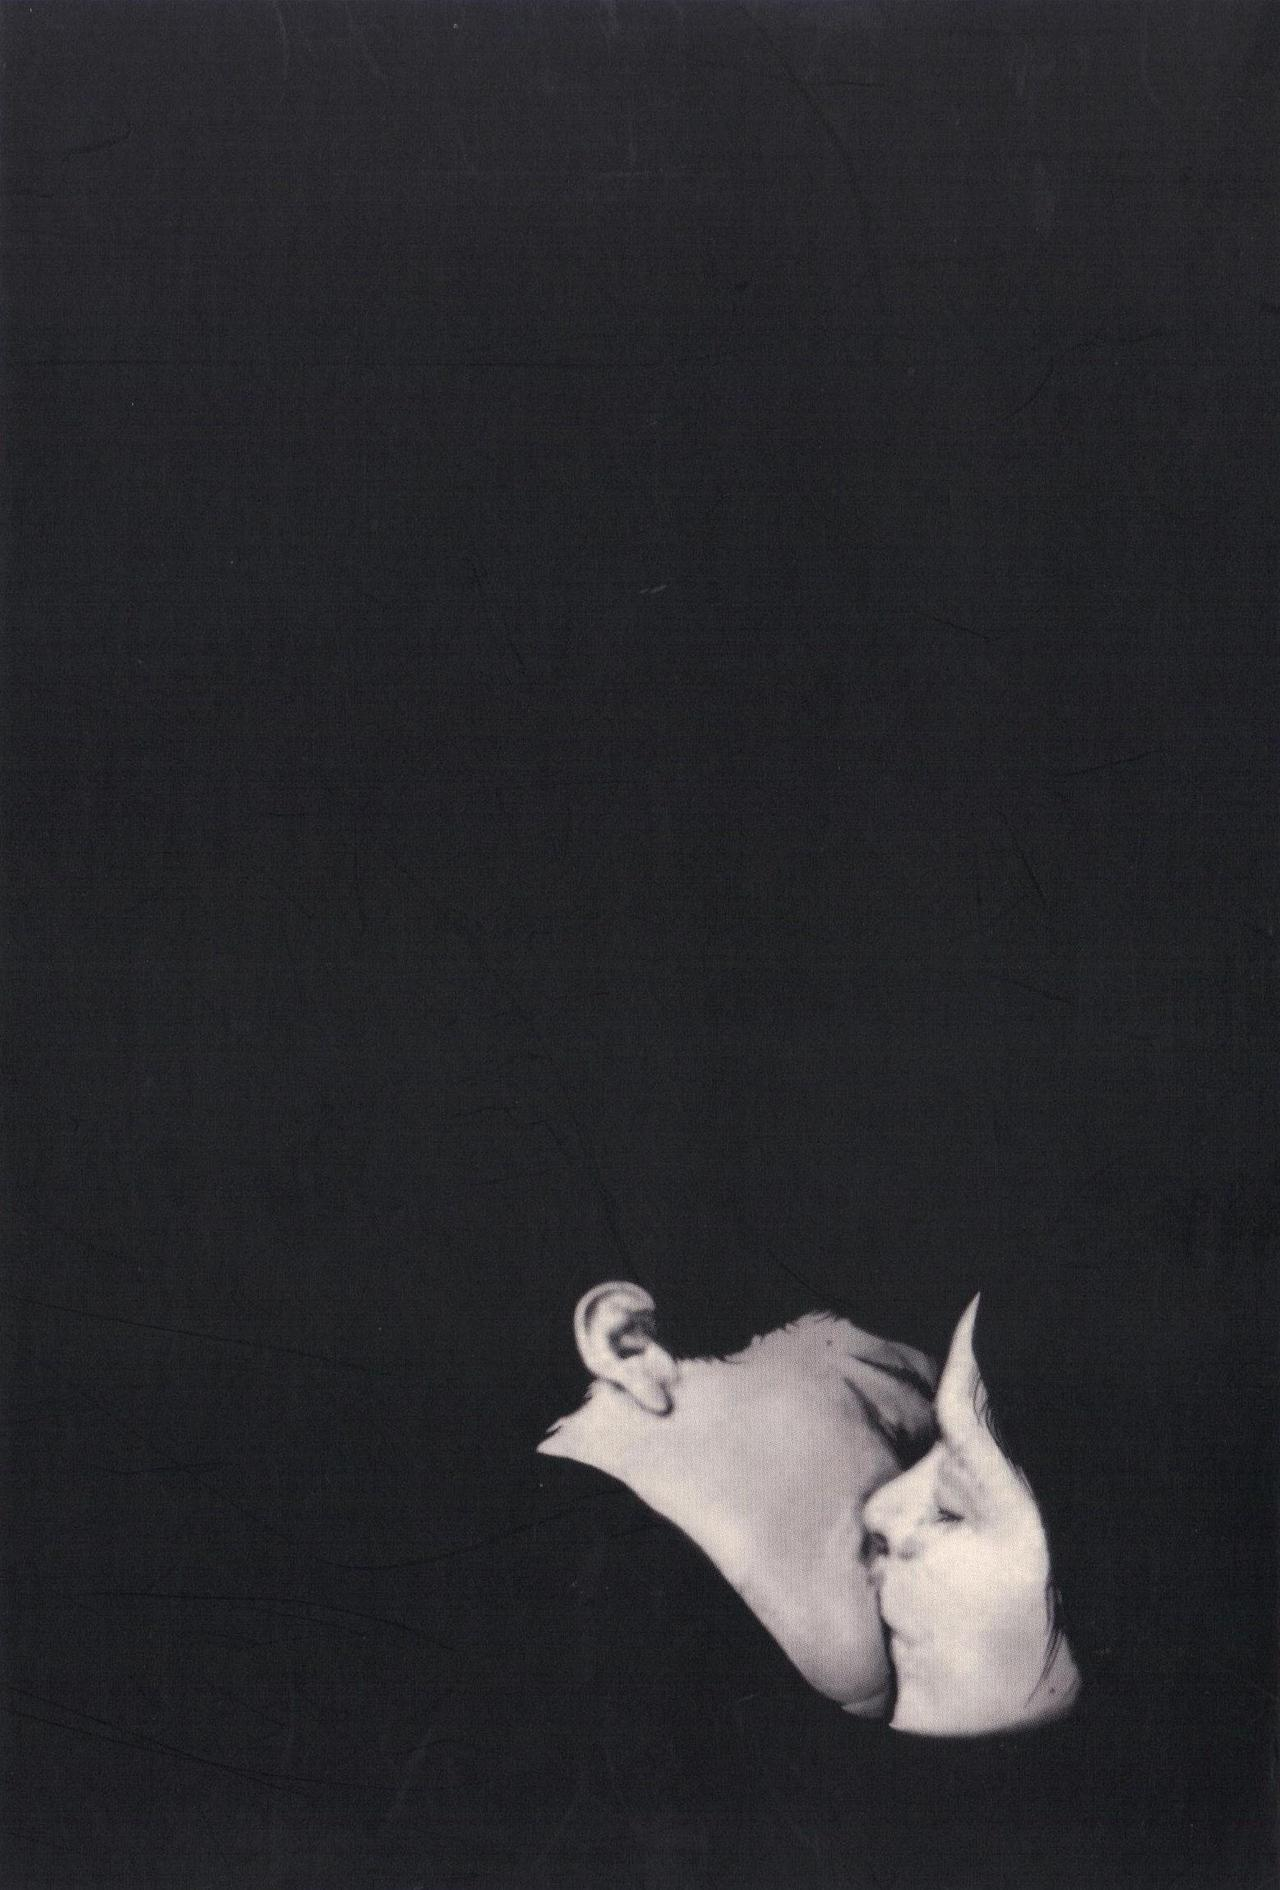 clavicola:  John Stezaker - Untitled, 1976.… from Love and Desire, William A. Ewing, Chronicle Books, 1999.